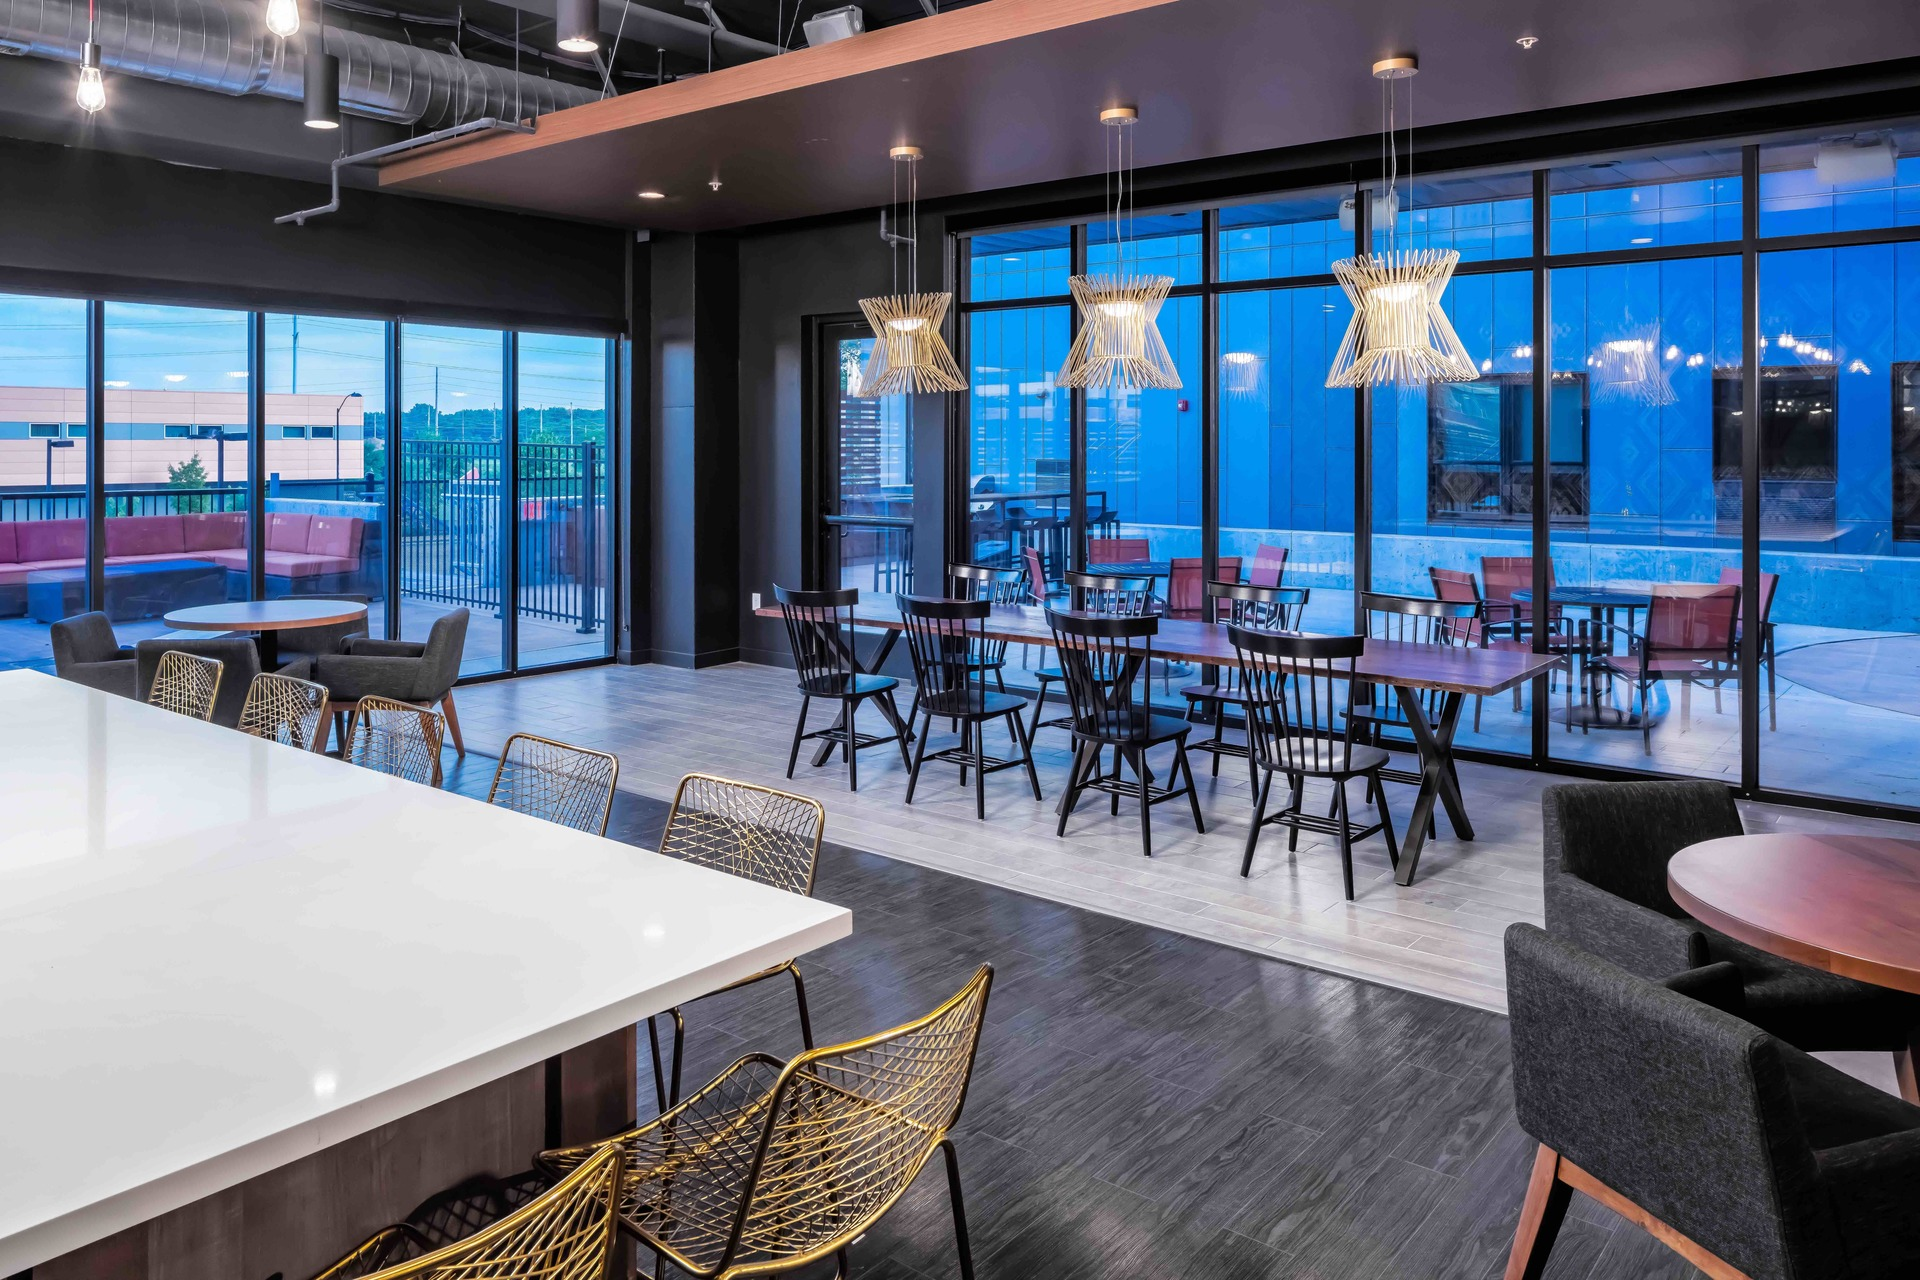 Indoor Club Room at the Flux apartments in Des Moines, IA, by Bauer Design Build. Photography by Brandon Stengel - www.farmkidstudios.com Instagram:  @farmkidstudios